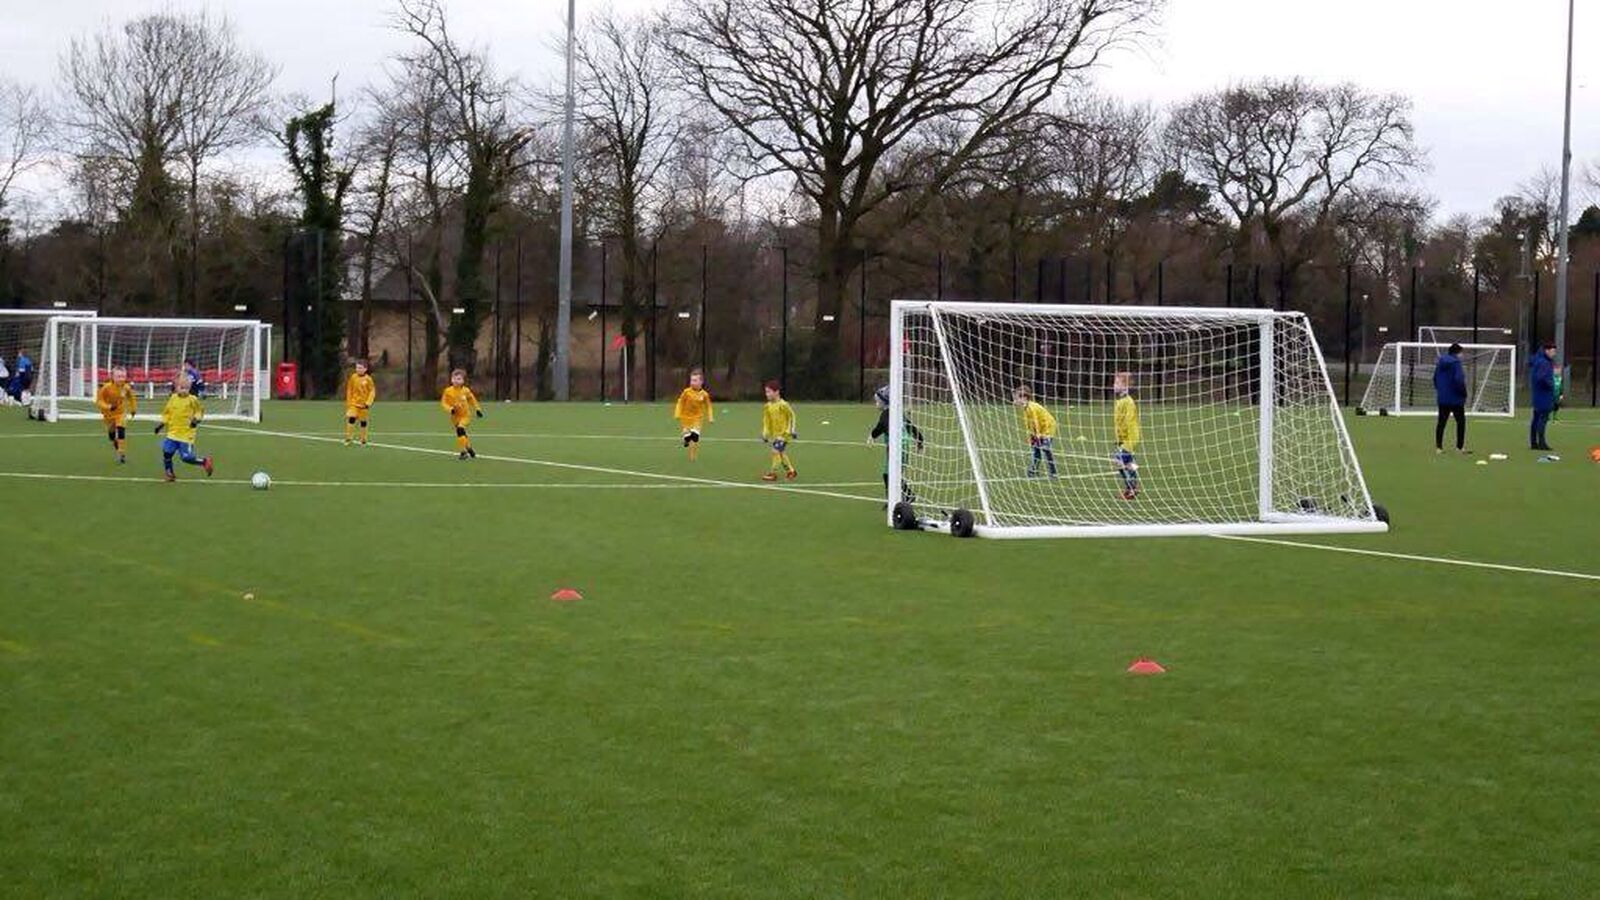 Ormskirk FC U7s Play against Preston North End at their Academy